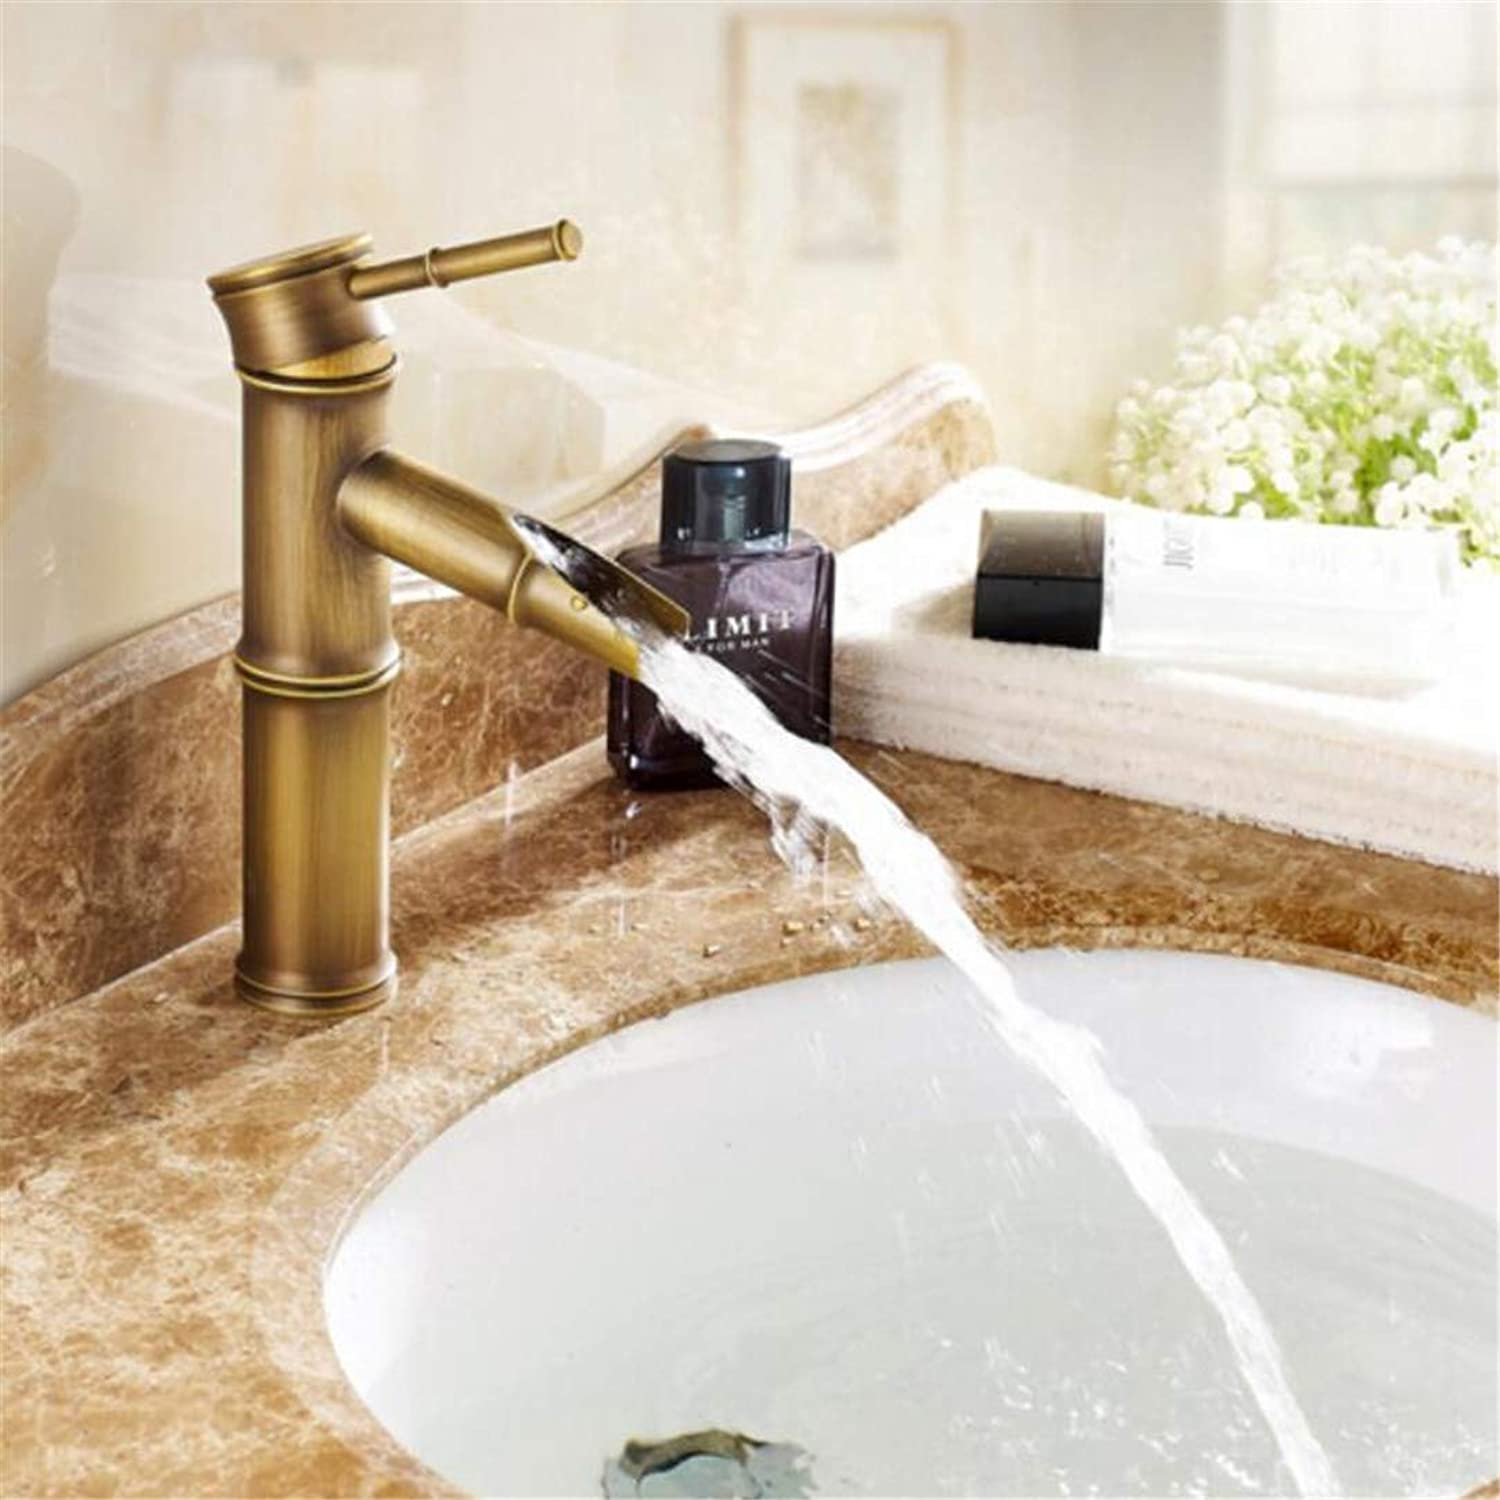 Faucet Washbasin Mixer Luxury High Quality Bronze Finished Cold and Hot Bamboo Single Lever Bathroom Sink Faucet Basin Faucet